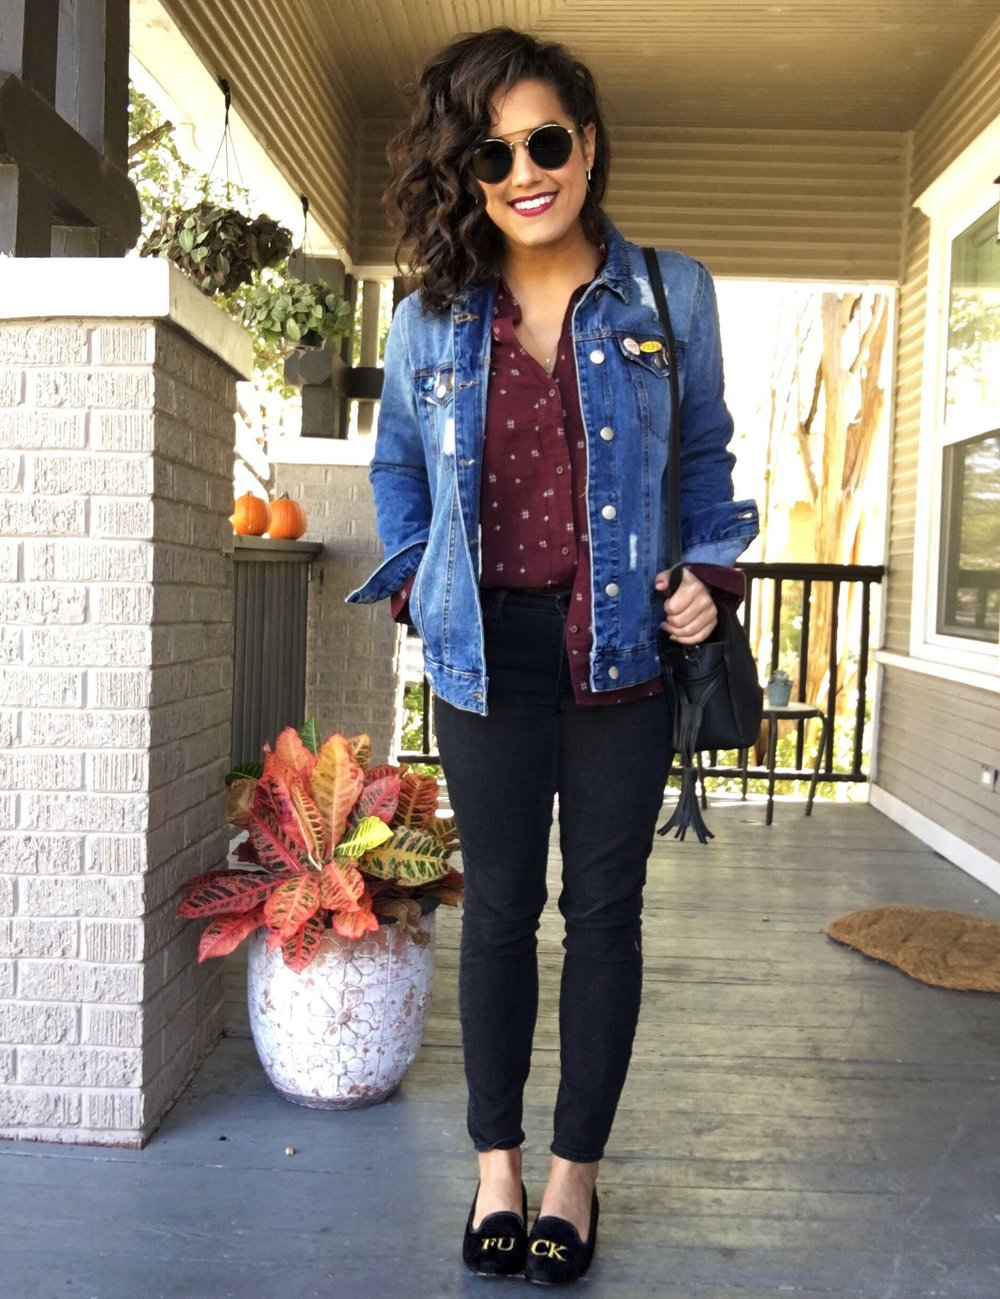 SEATTLE MOM STRIKES AGAIN - IDK why, but every time I do a layered denim jacket + button down look, I feel like I belong in the Pacific Northwest, driving a Subaru, and taking my kiddos to school (this is my actual dream, though). In my opinion, you can't go wrong with a layered look, and this one is casual, it's cute, it's popular to boot! Plus, this outfit gave me a prime opportunity to sport my FUCK shoes around town, which I did with pride. There are a lot of components to this look, so imma let you explore them at your leisure below.Shirt // Jacket // Jeans // Shoes // Bag // Sunnies // Lipstick in